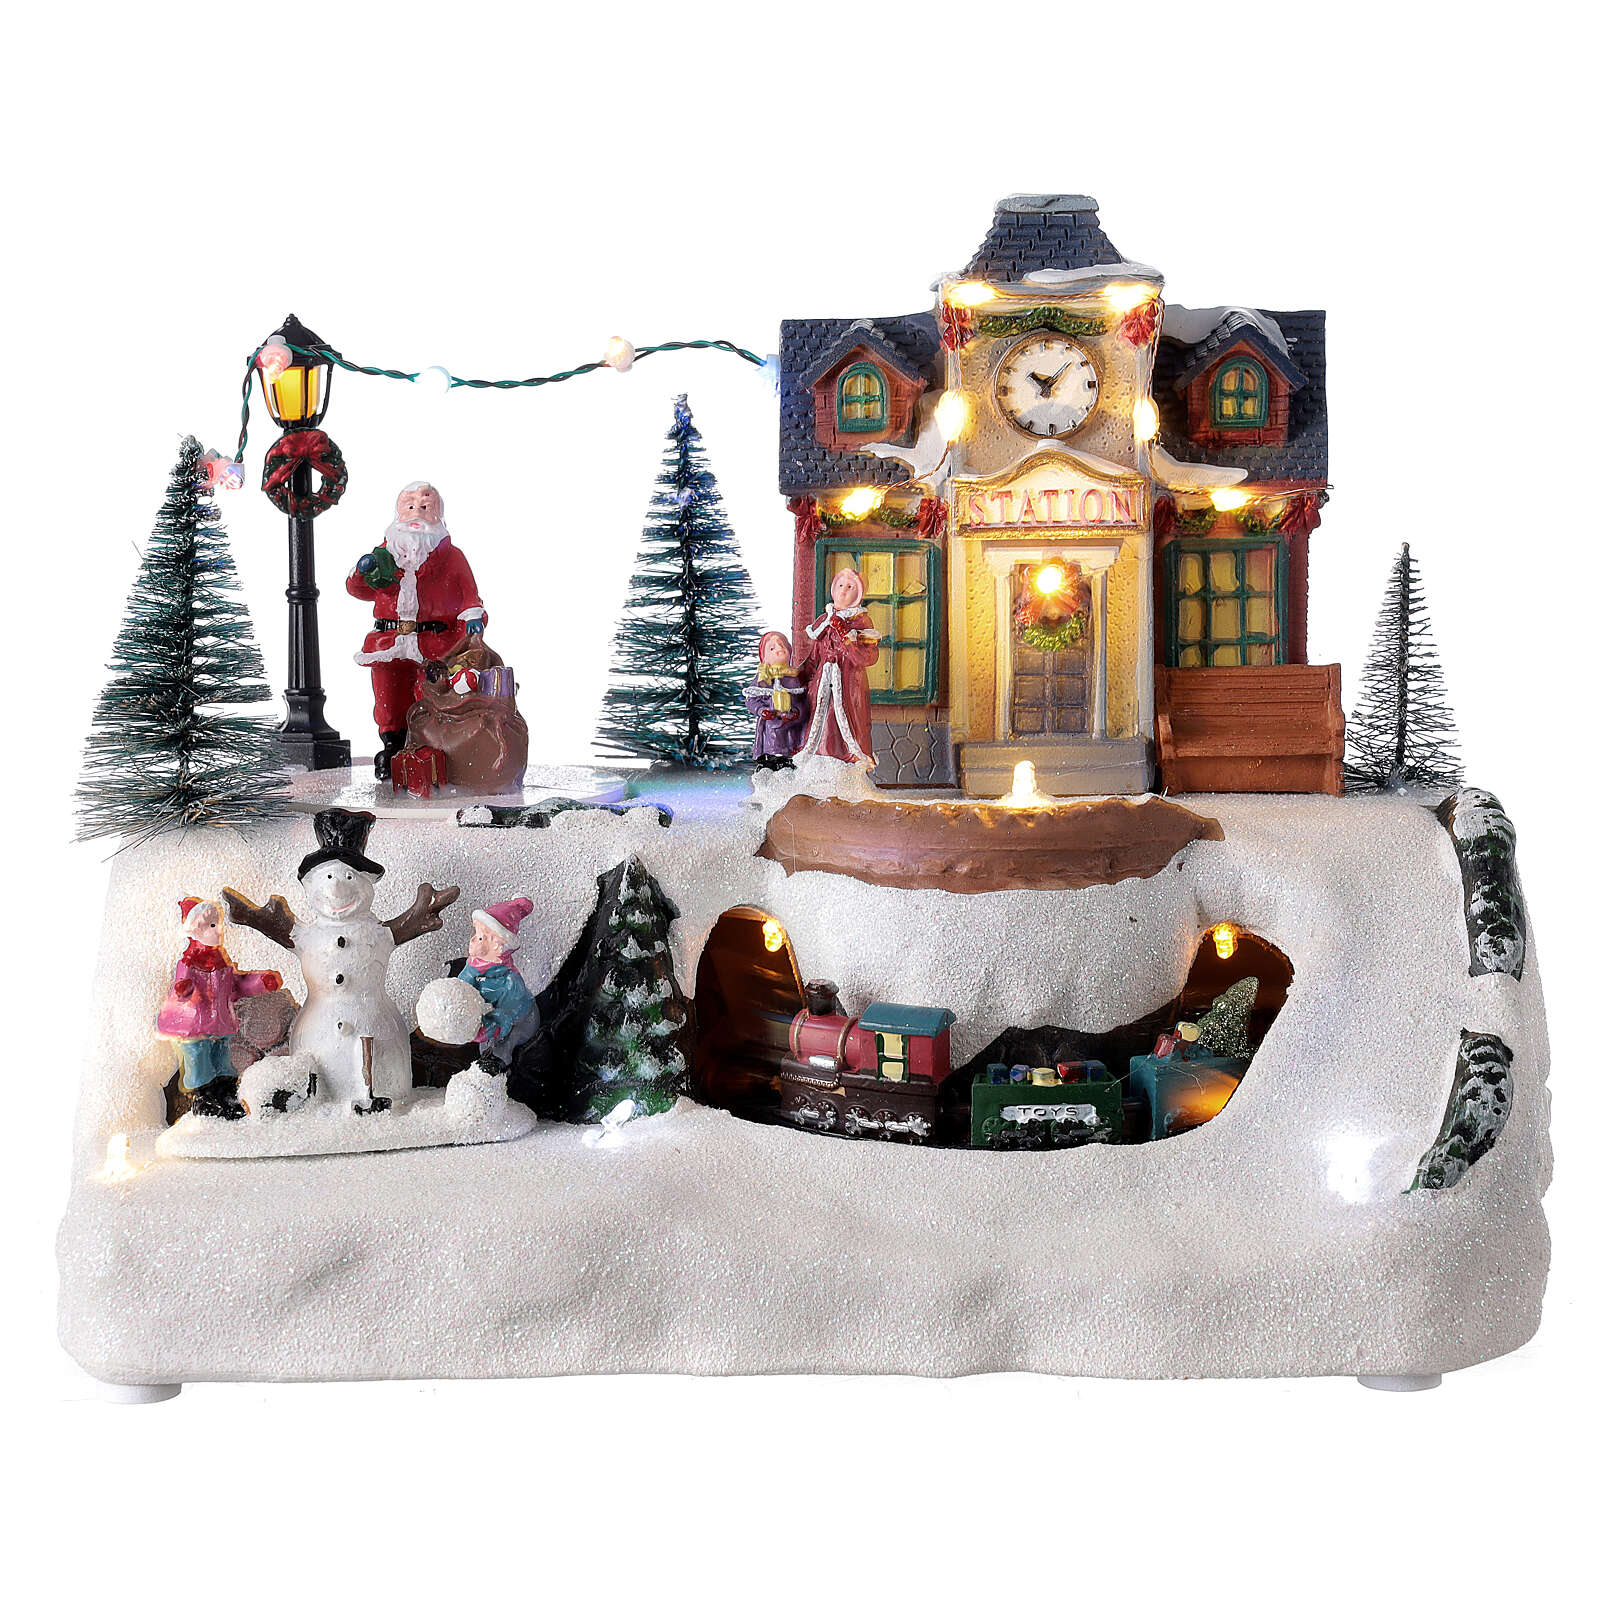 Train station Christmas village Santa music 20x30x20 cm 3